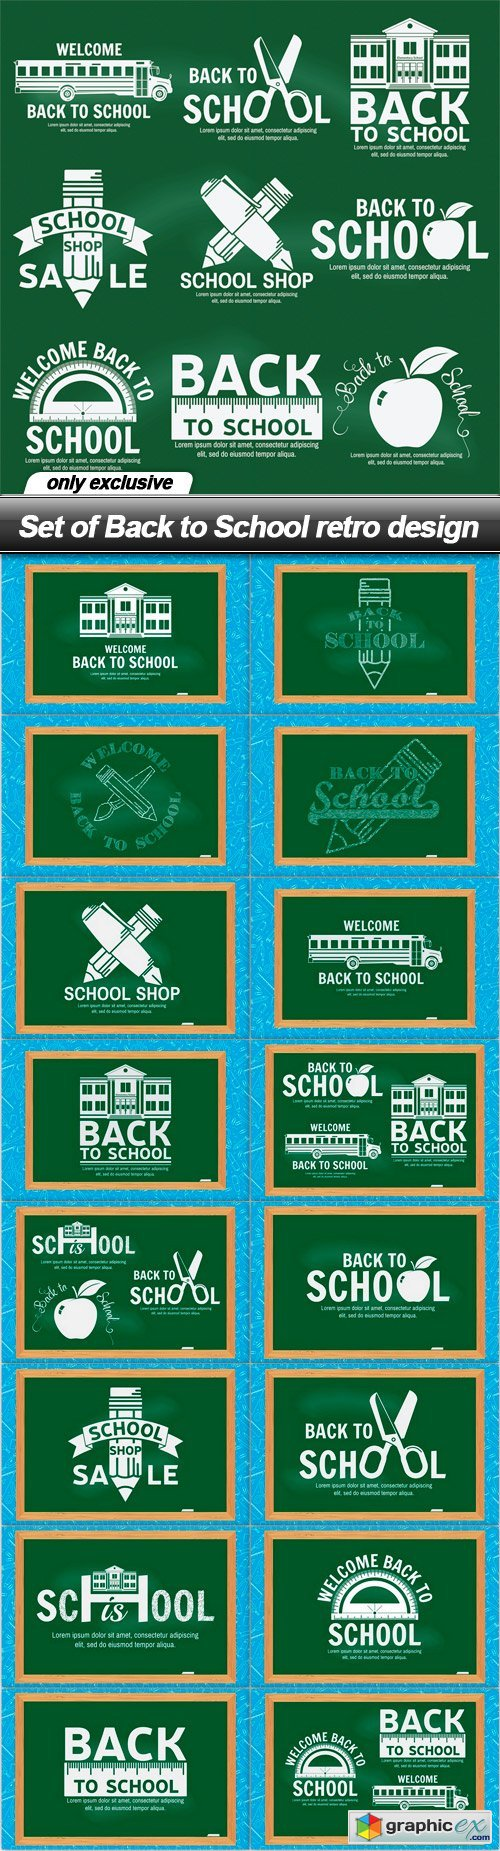 Set of Back to School retro design - 17 EPS